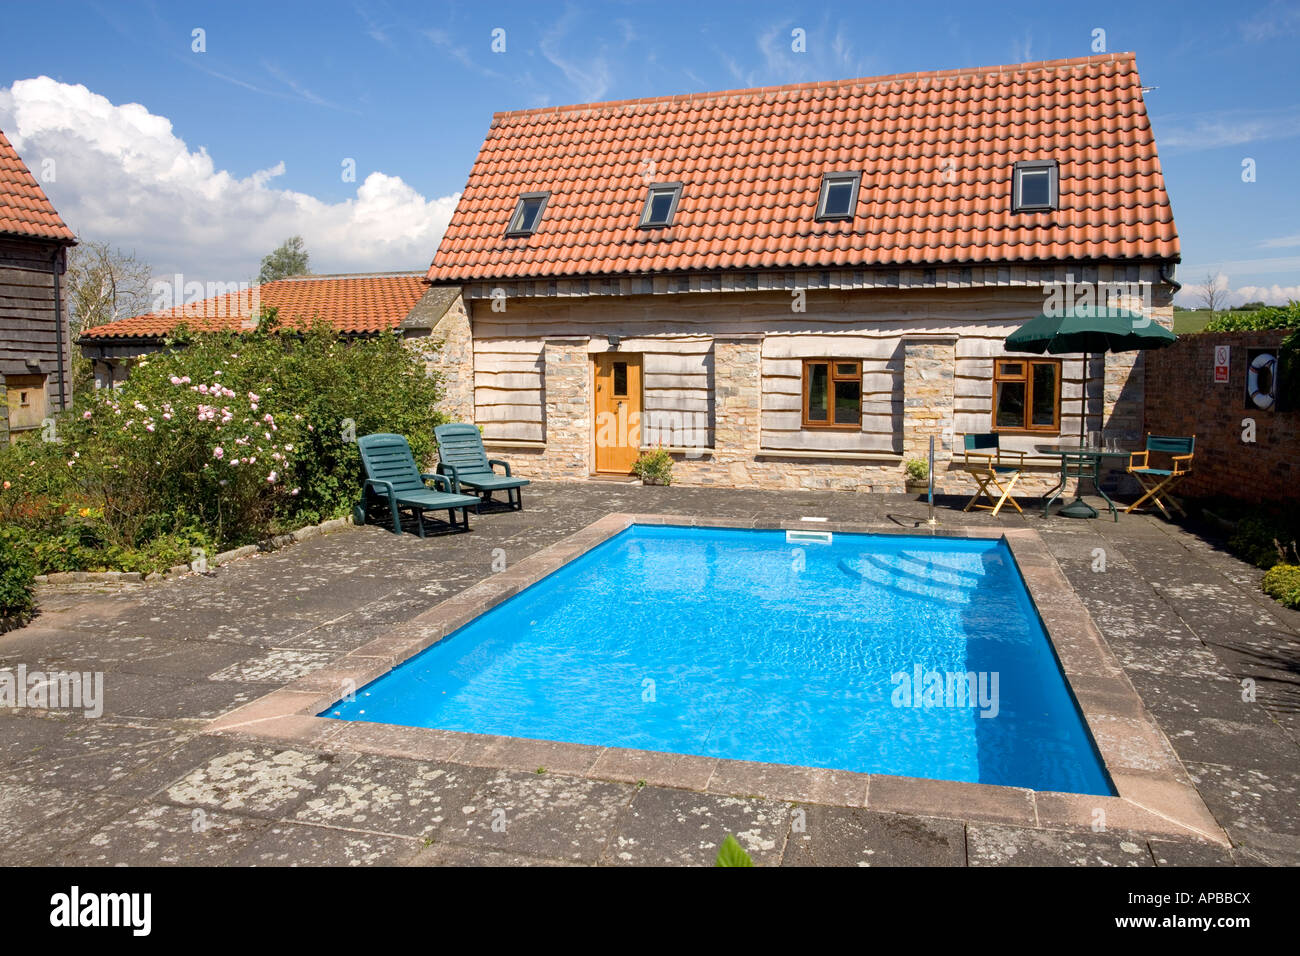 Uk Real Estate Small Outdoor Swimming Pool In Garden Of House Stock Photo Alamy